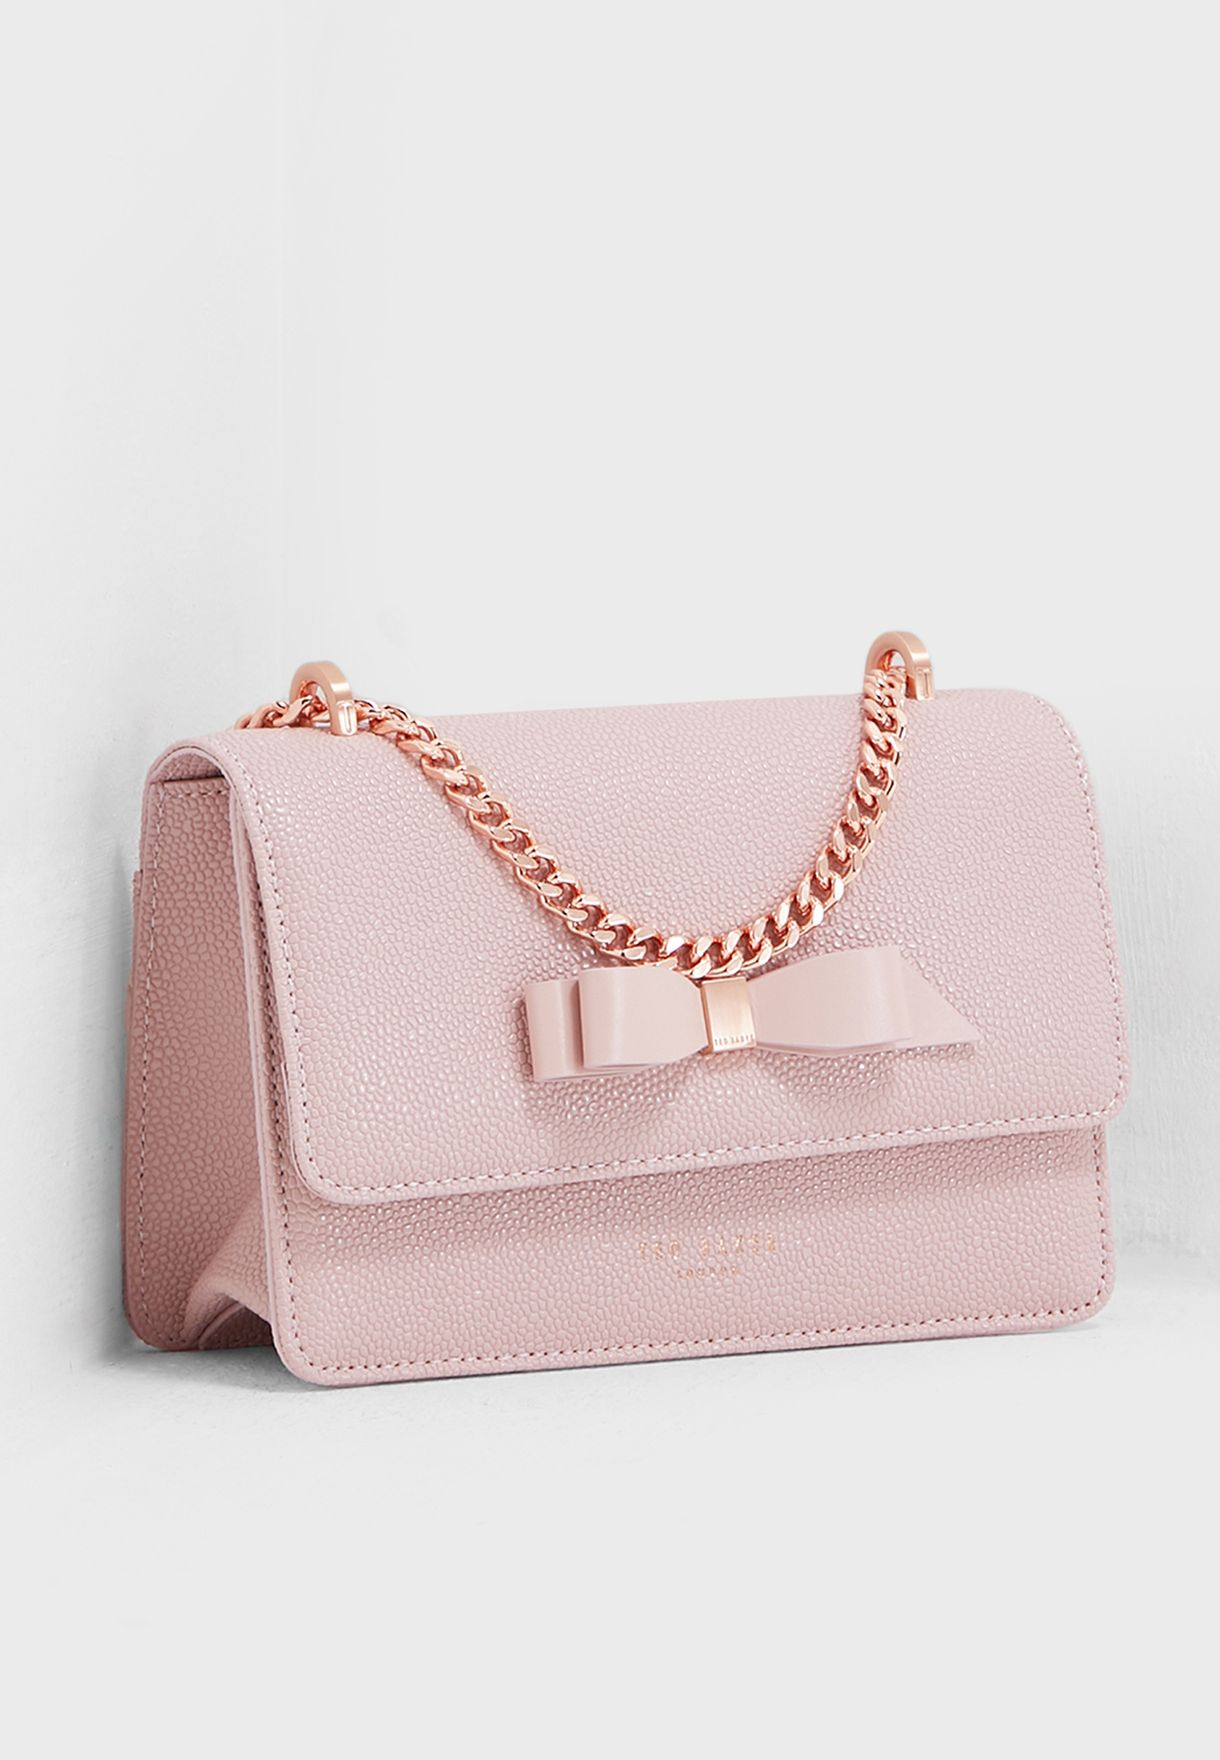 b0d3591b718 Shop Ted baker pink Jayllaa Bow Detail Micro Crossbody 151187 for ...